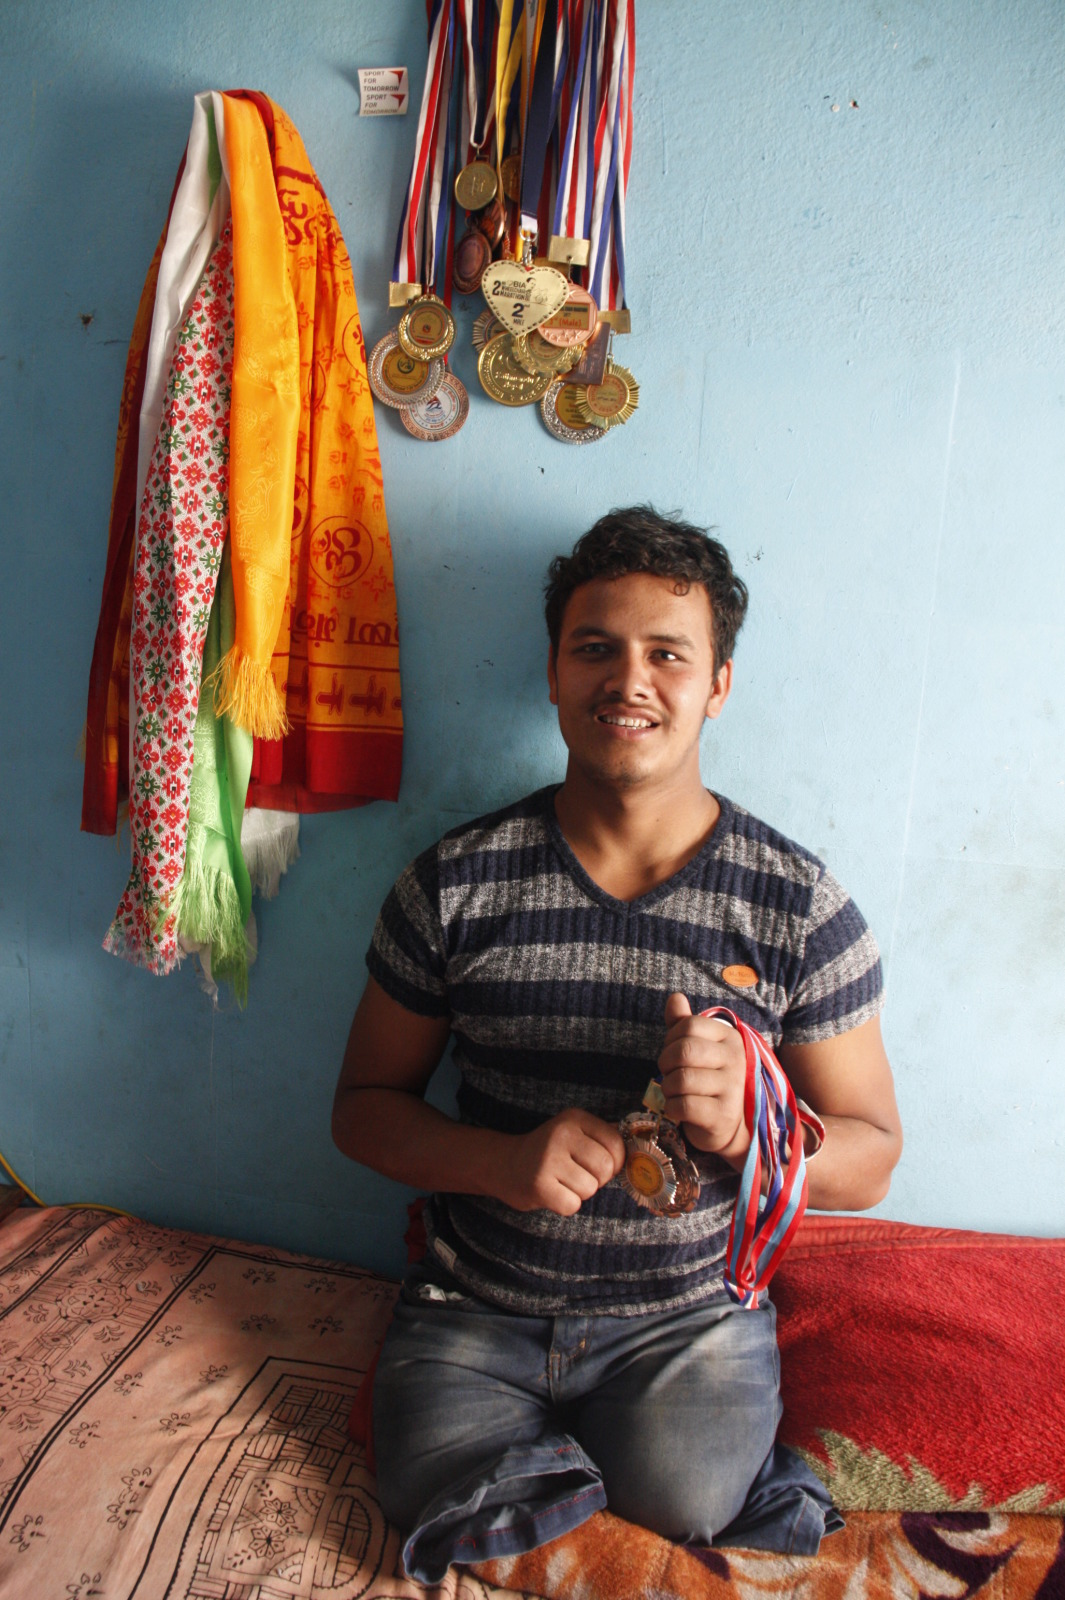 Ramesh_with_his_medals_in_Nepal.JPEG